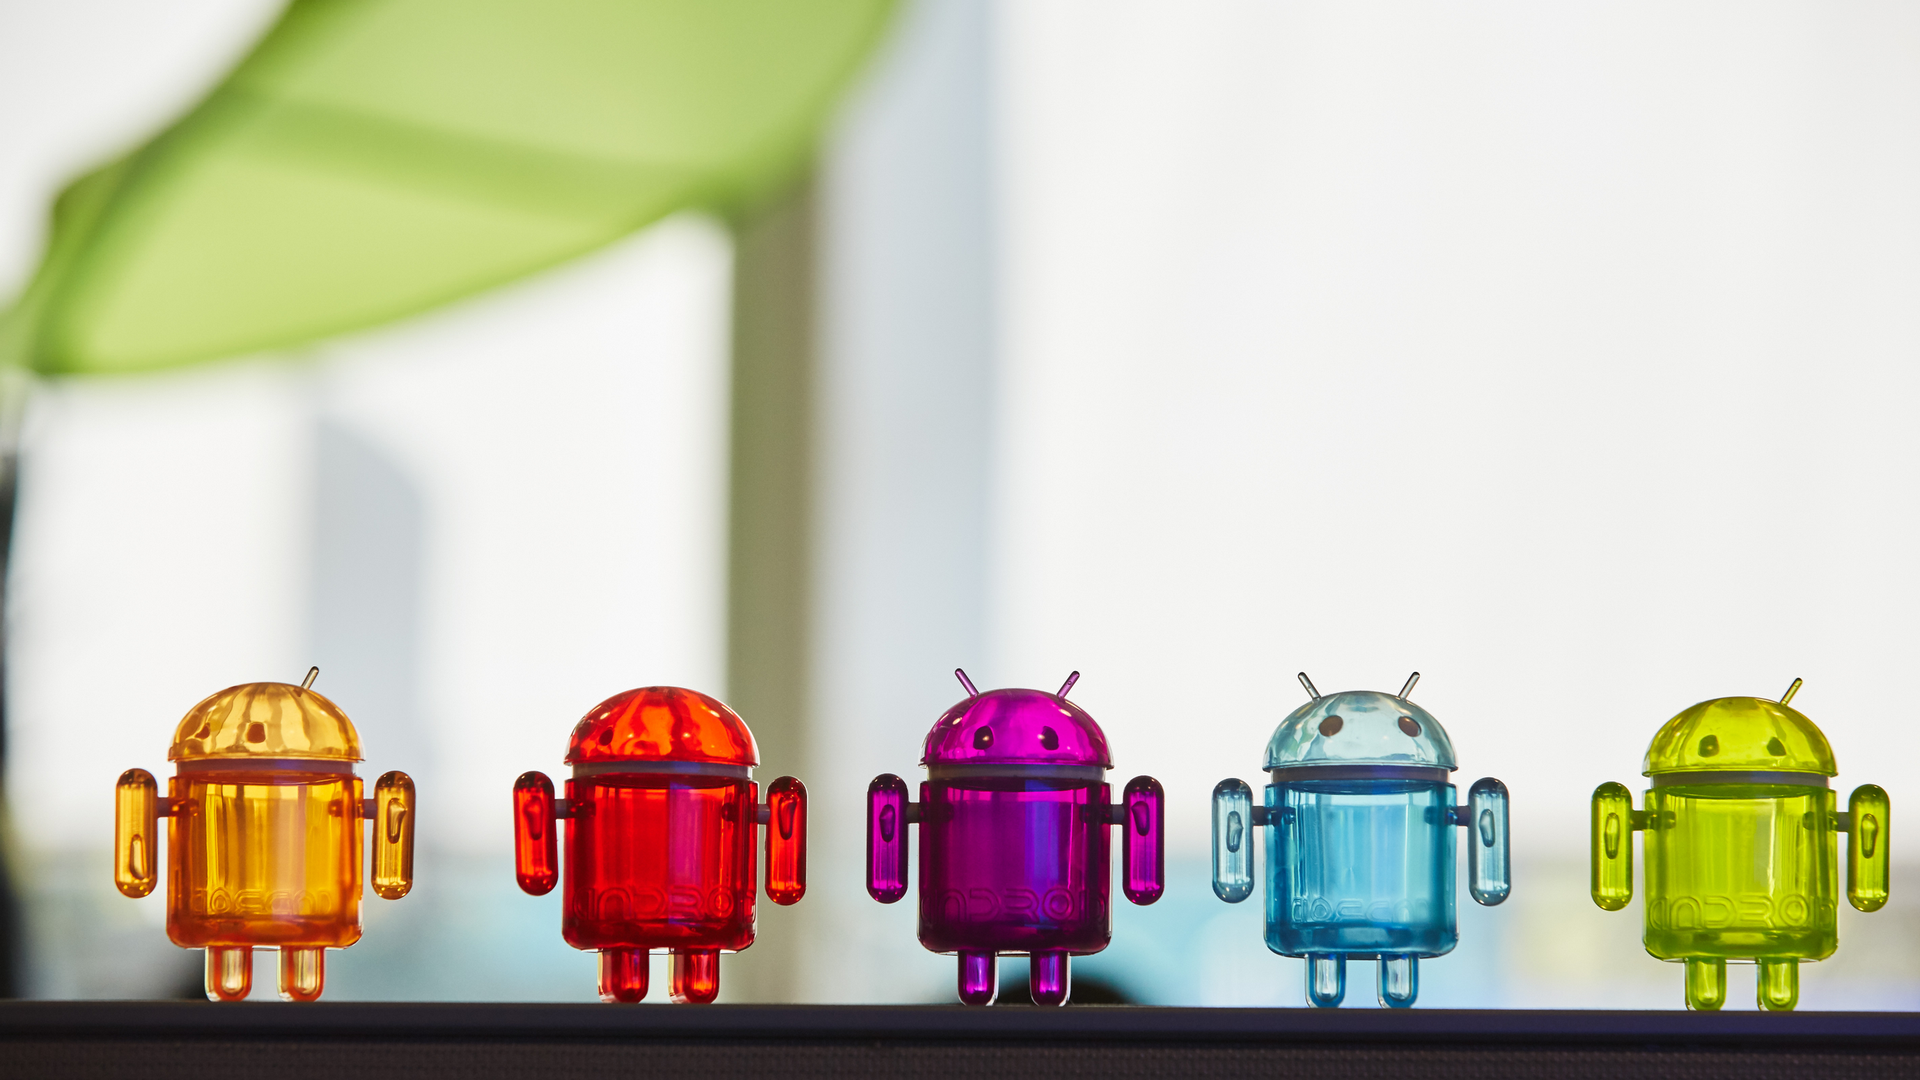 A collection of colorful Android toys